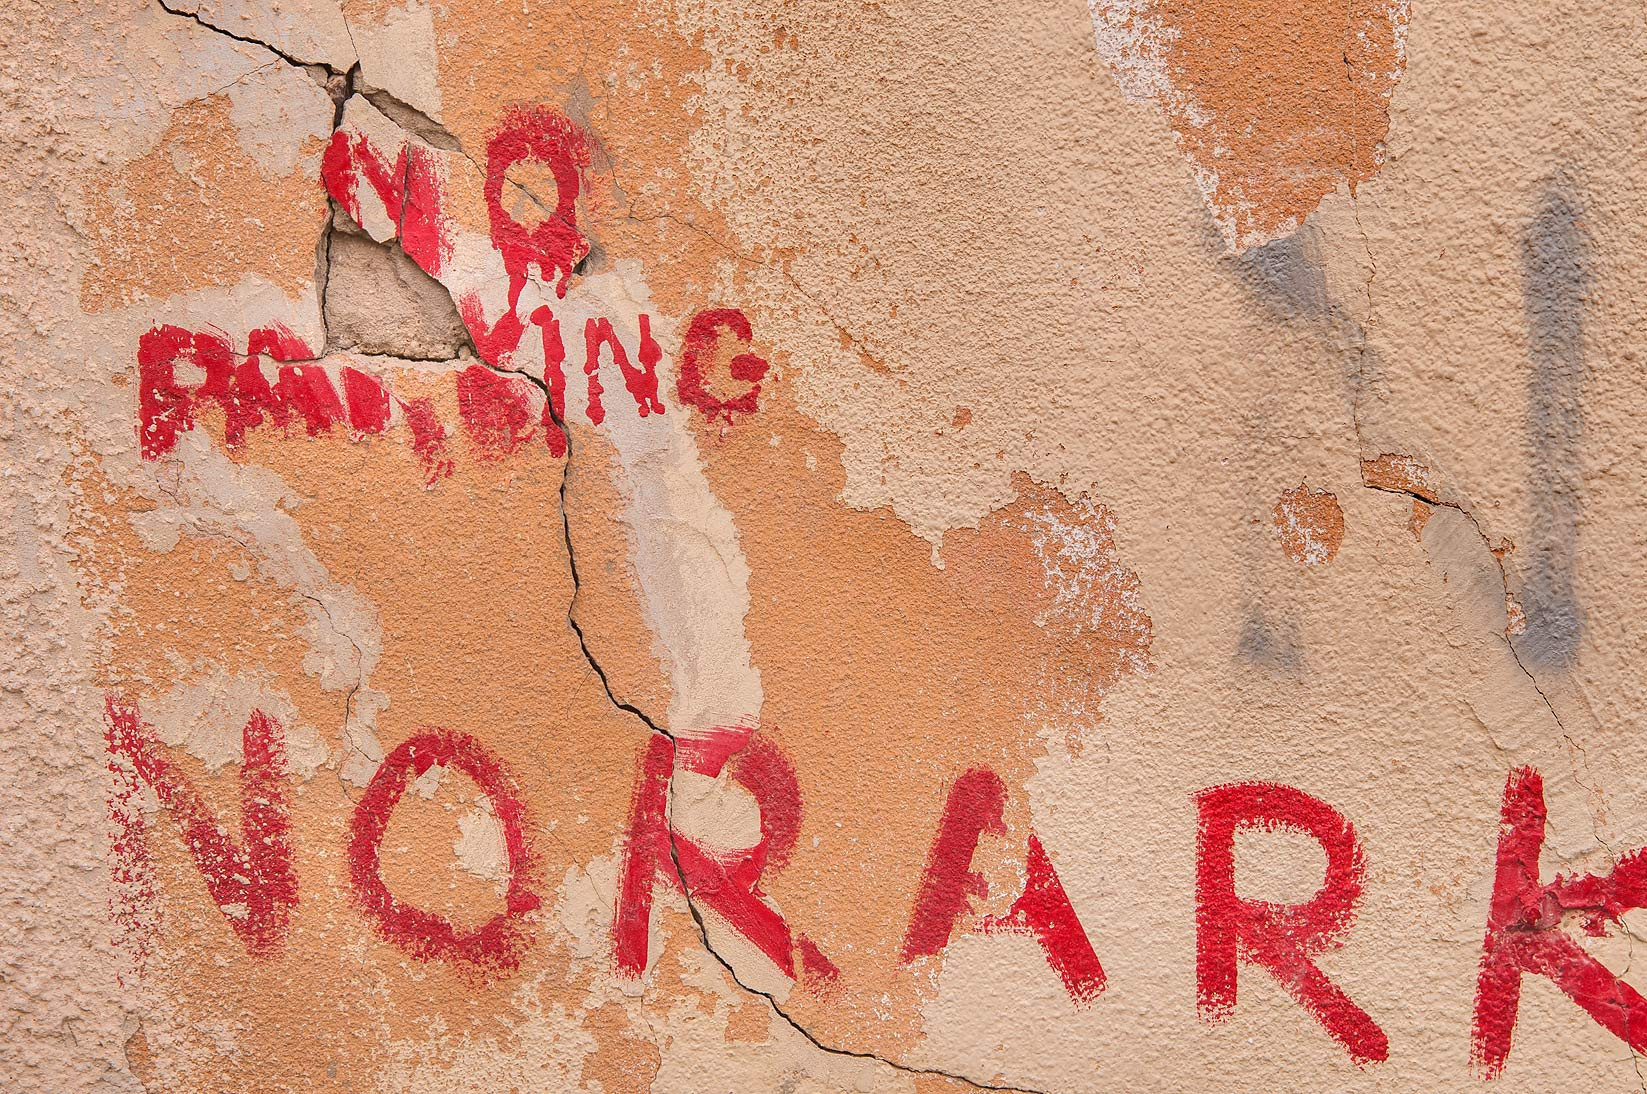 Painted NORARKING sign (graffiti) at Sikkat Bishr...Bakhoor St., Najma area. Doha, Qatar